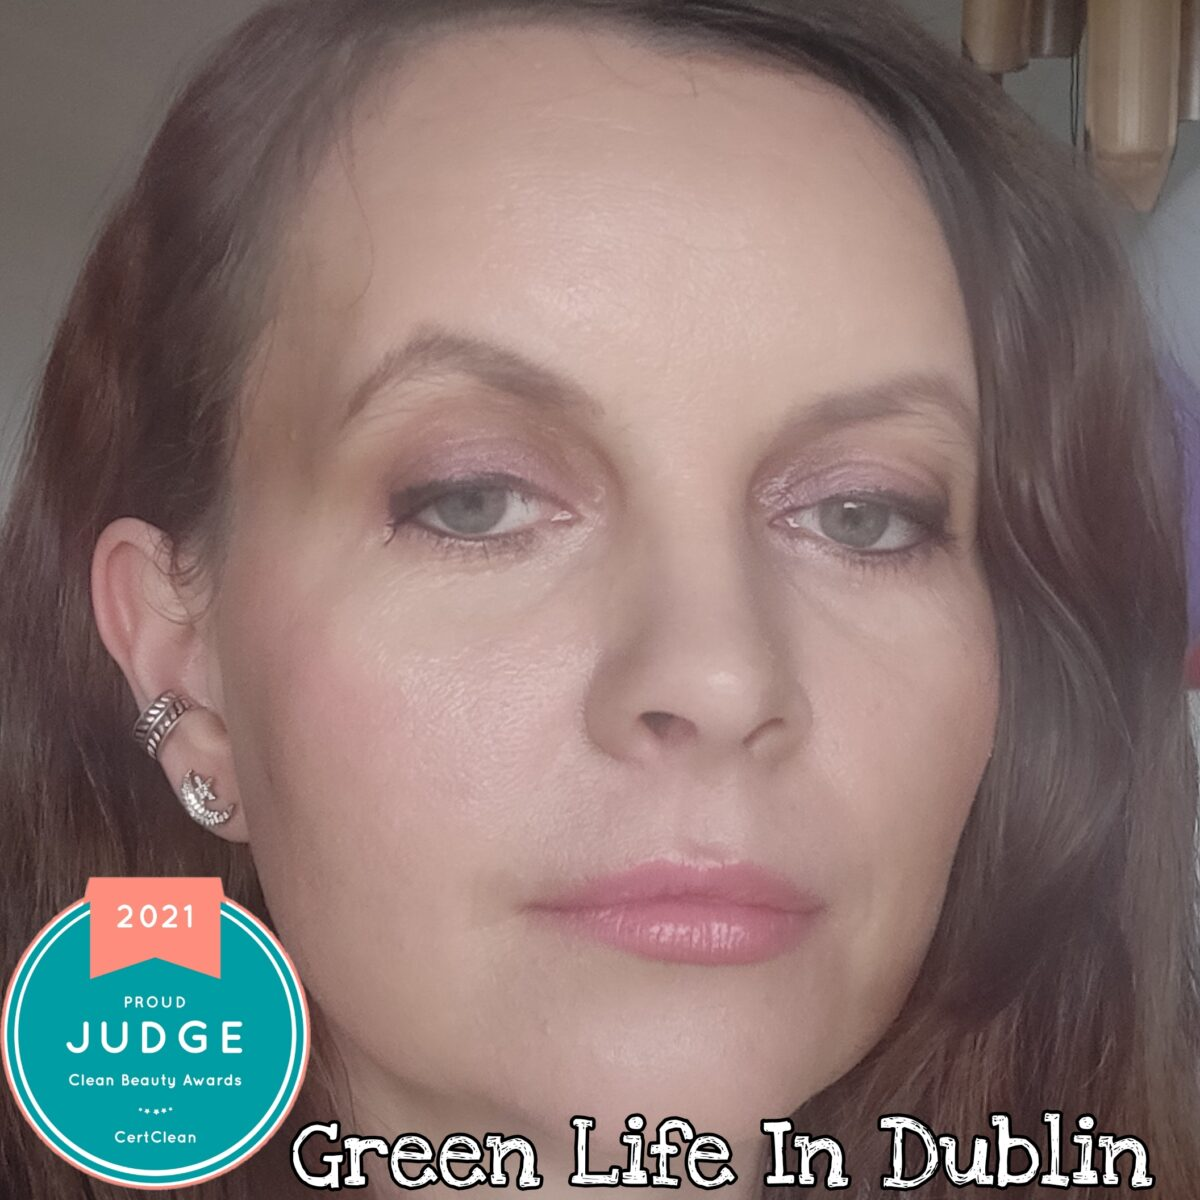 Judging for Clean Beauty Awards 2021 – Green Life In Dublin